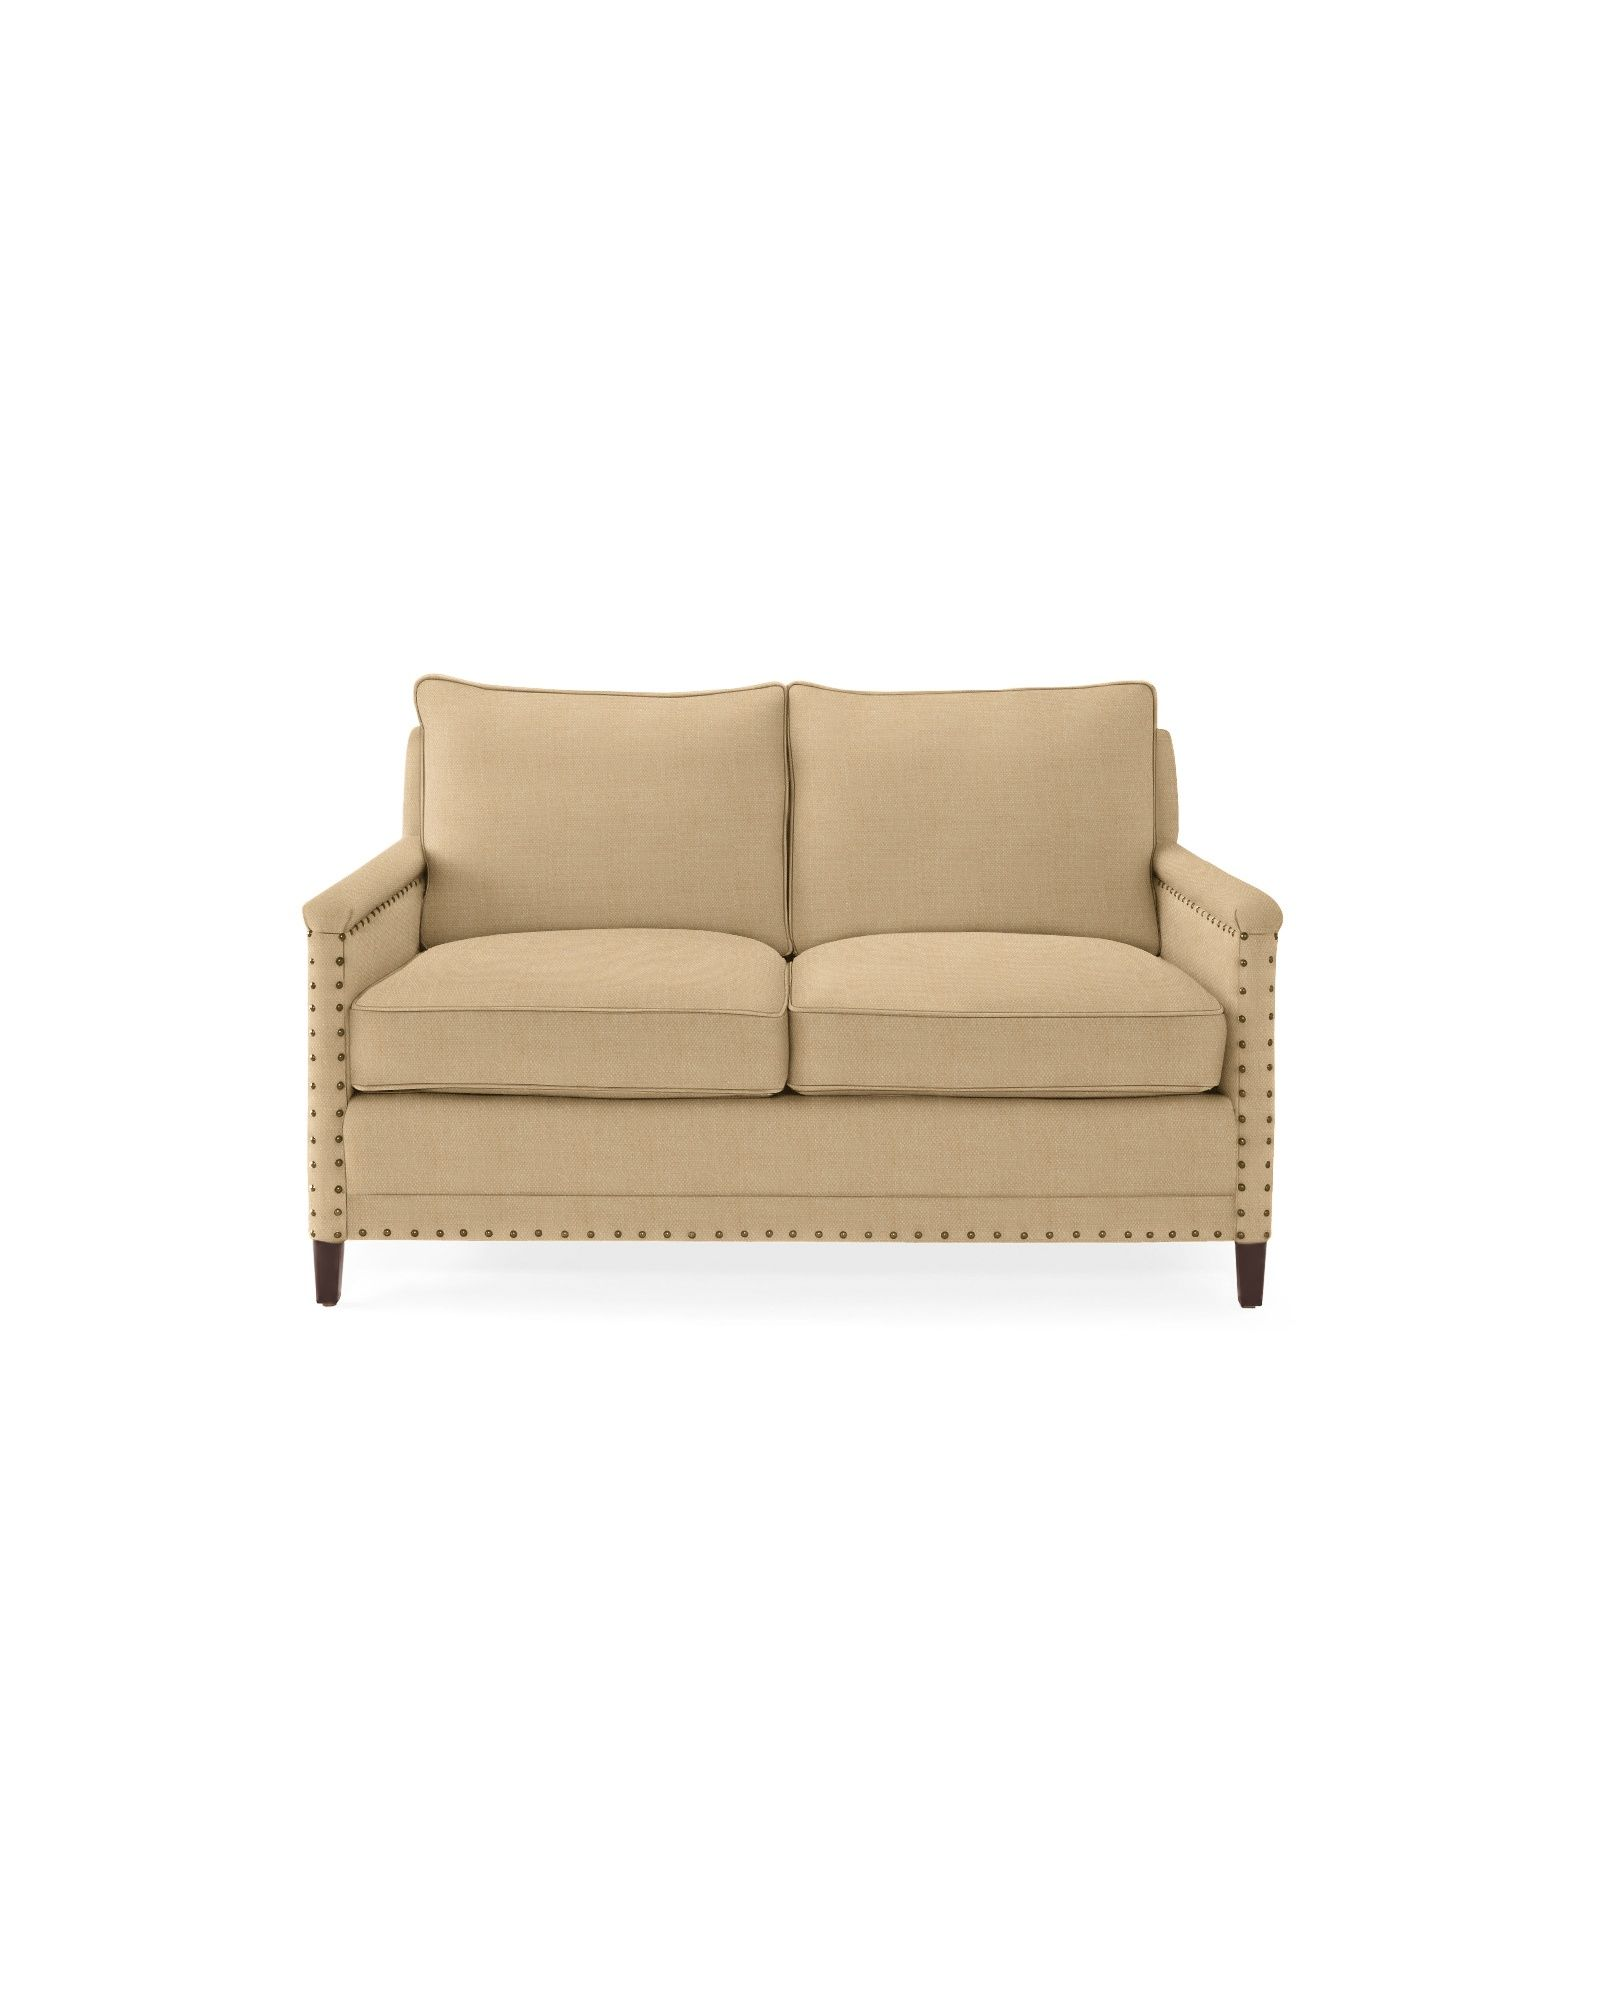 Spruce Street Loveseat With Nailheads Love Seat Living Furniture New England Homes